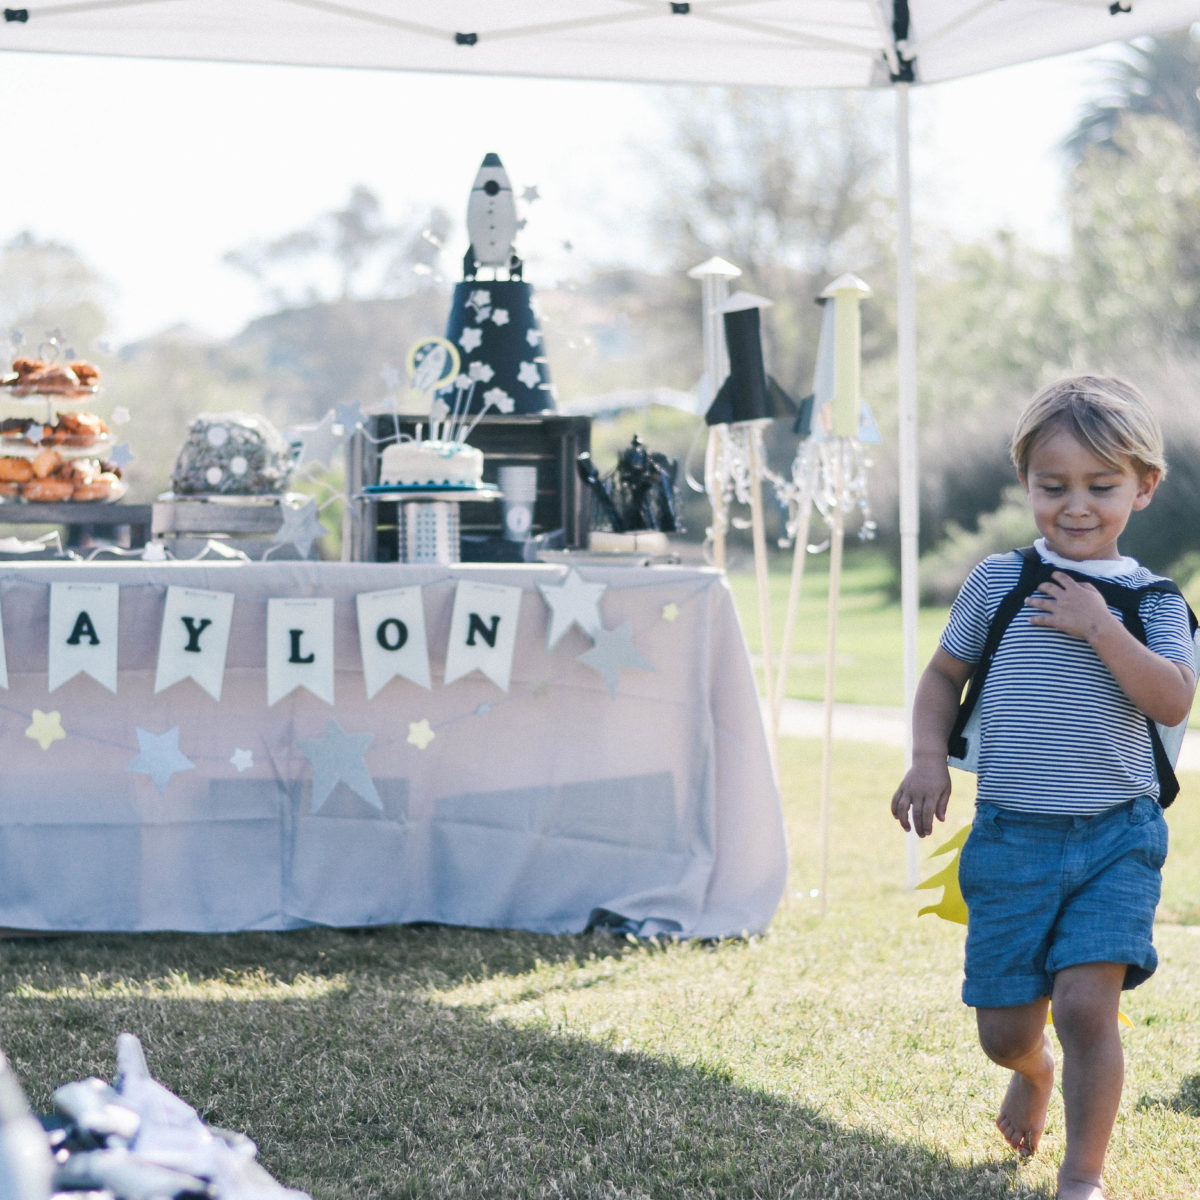 Waylon's 4th Birthday: A Space Themed Party